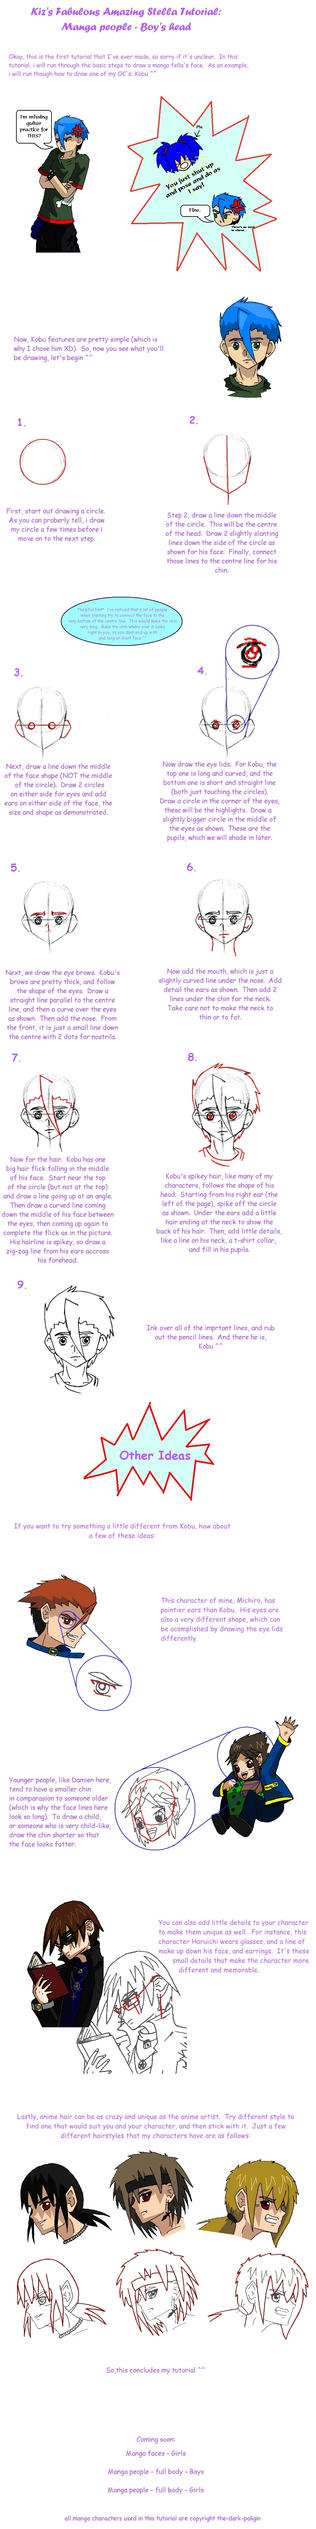 Tutorial - Manga boys faces by Bittersweet-Kat